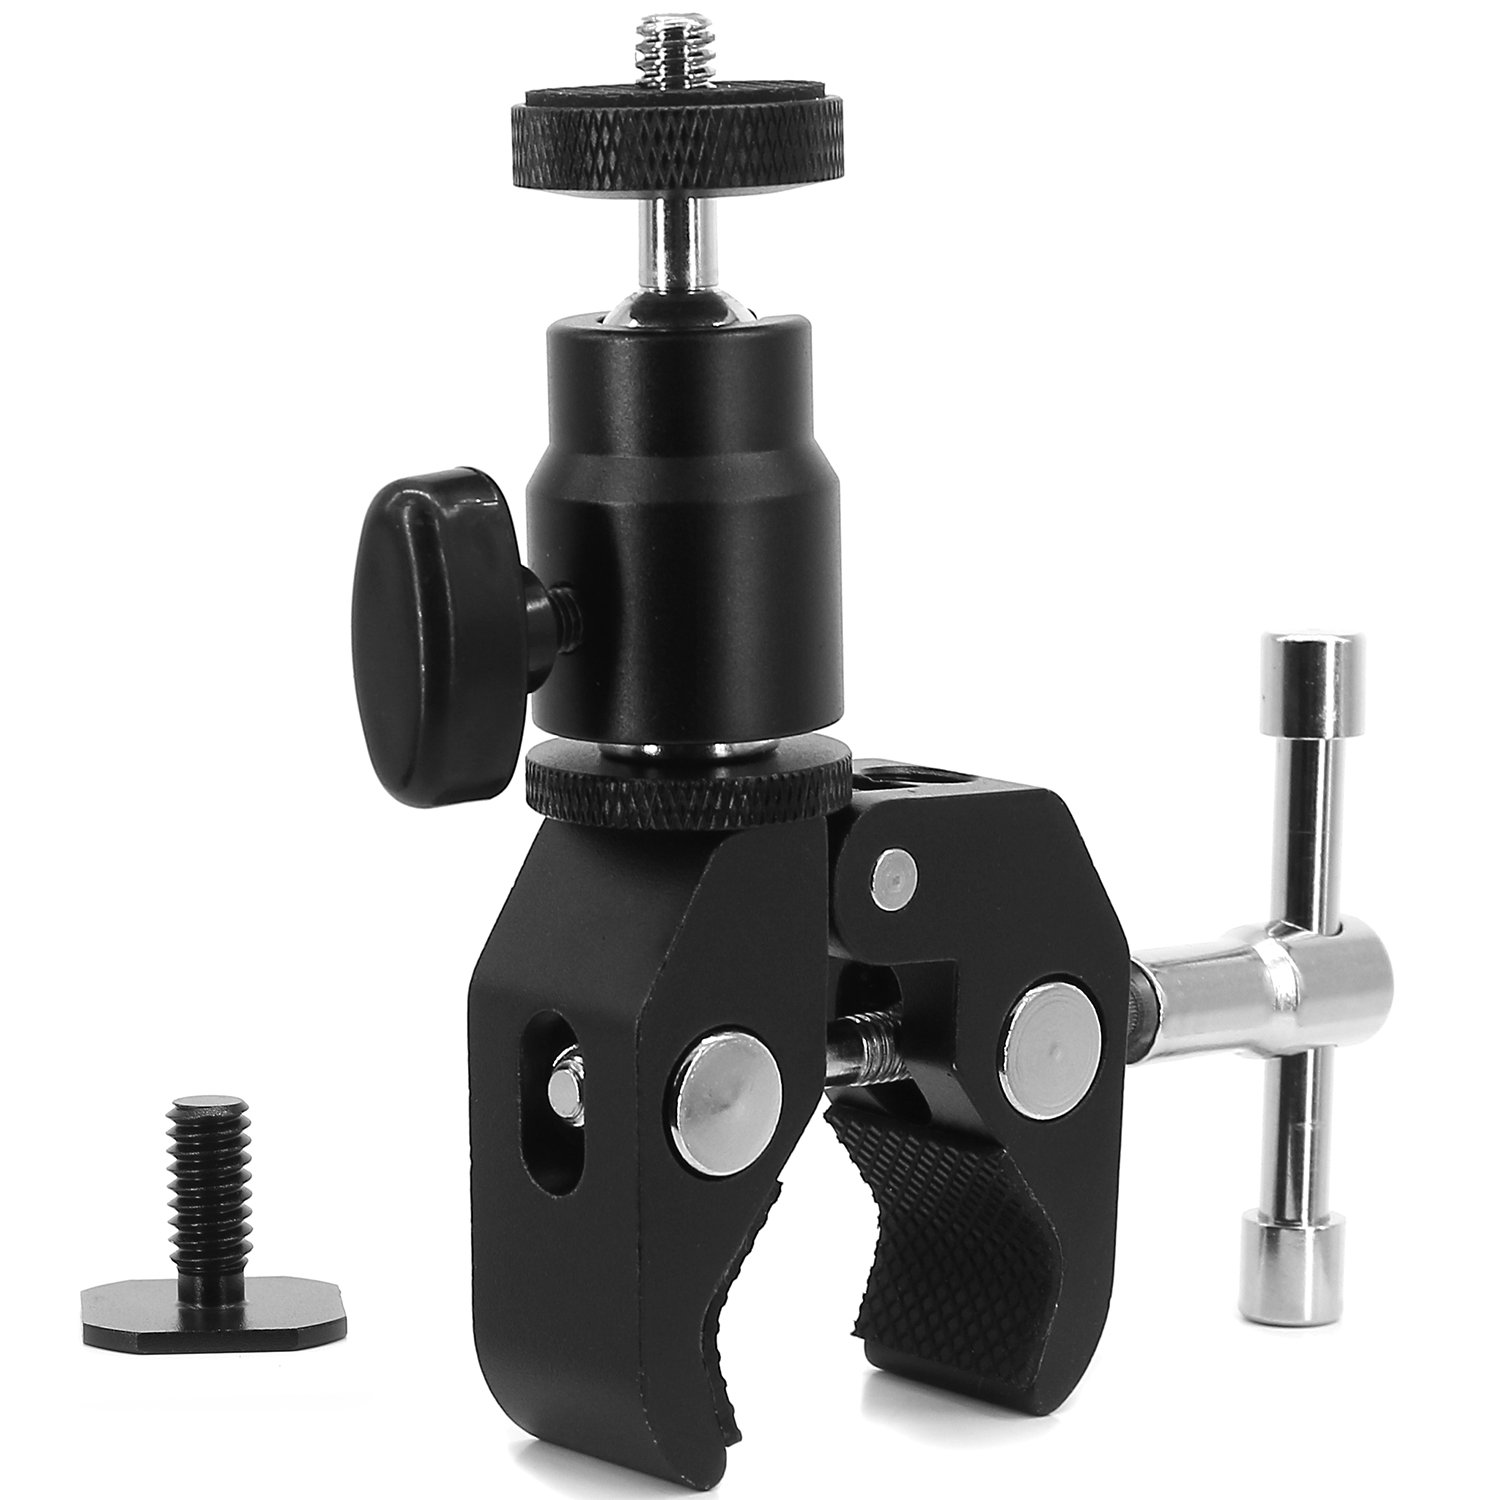 Ball Head Shoe Mount Camera Ball Mount Clamp w/1/4''-20 Tripod head Hot Shoe Adapter and Cool Super Clamp